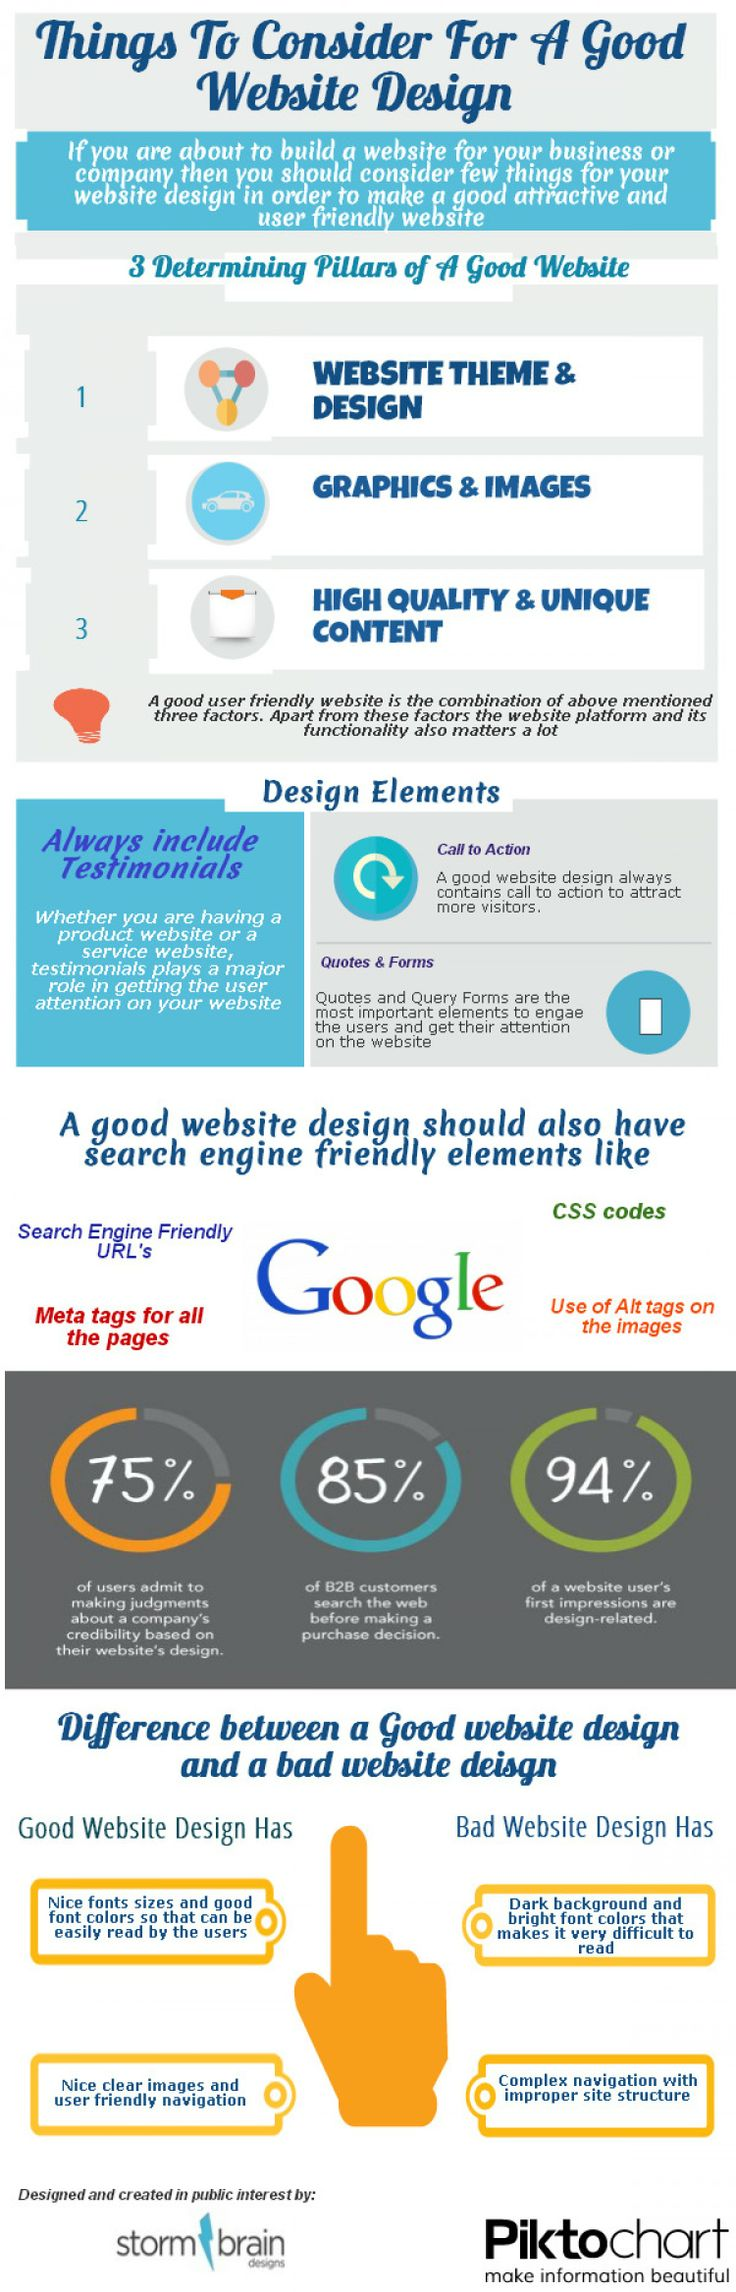 Infographic: Things to consider for a good website design.